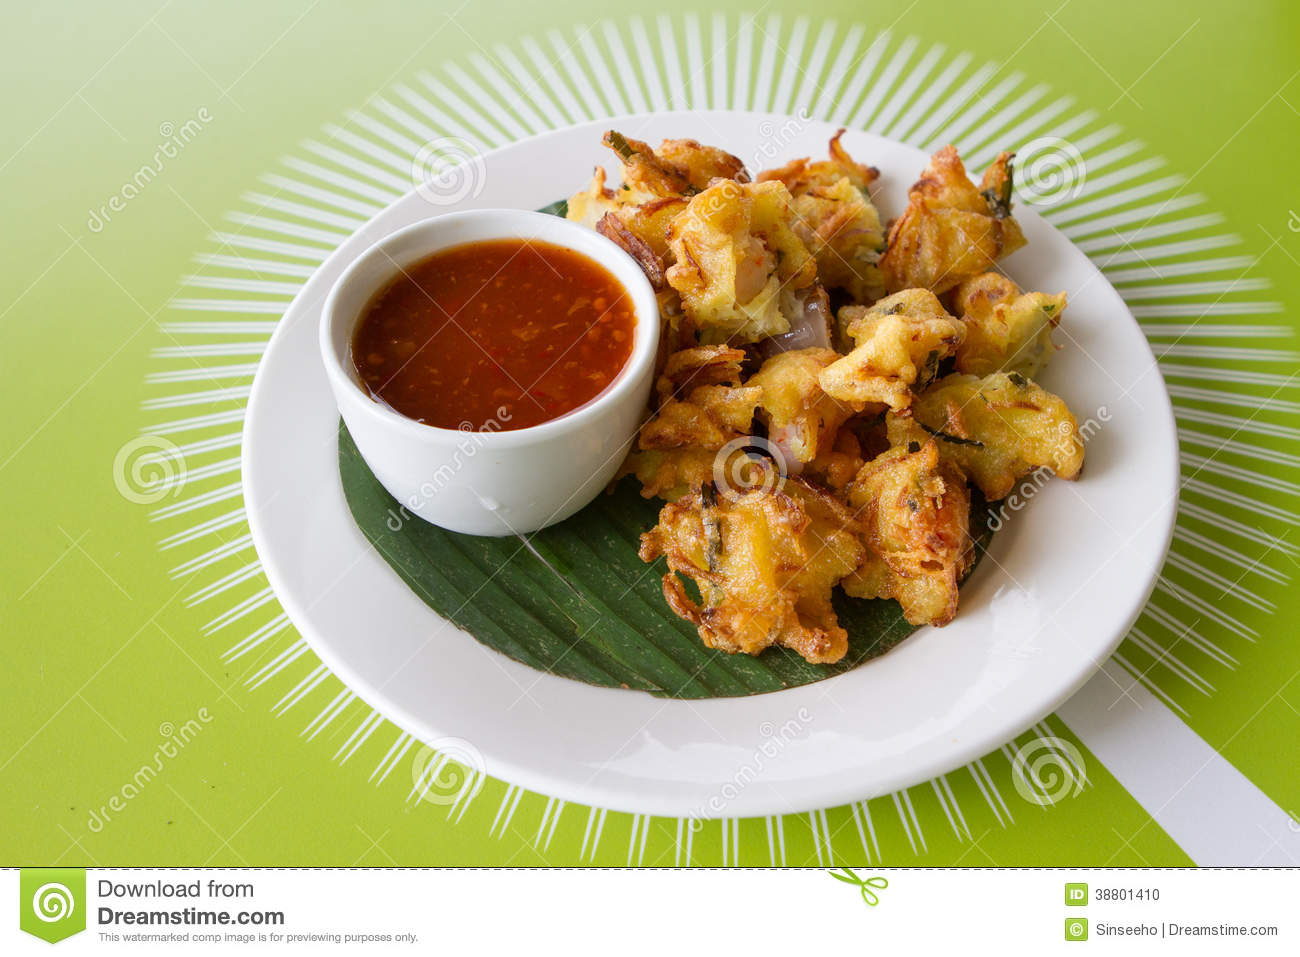 Cucur Udang Prawn Fritters, a Malaysian dish.